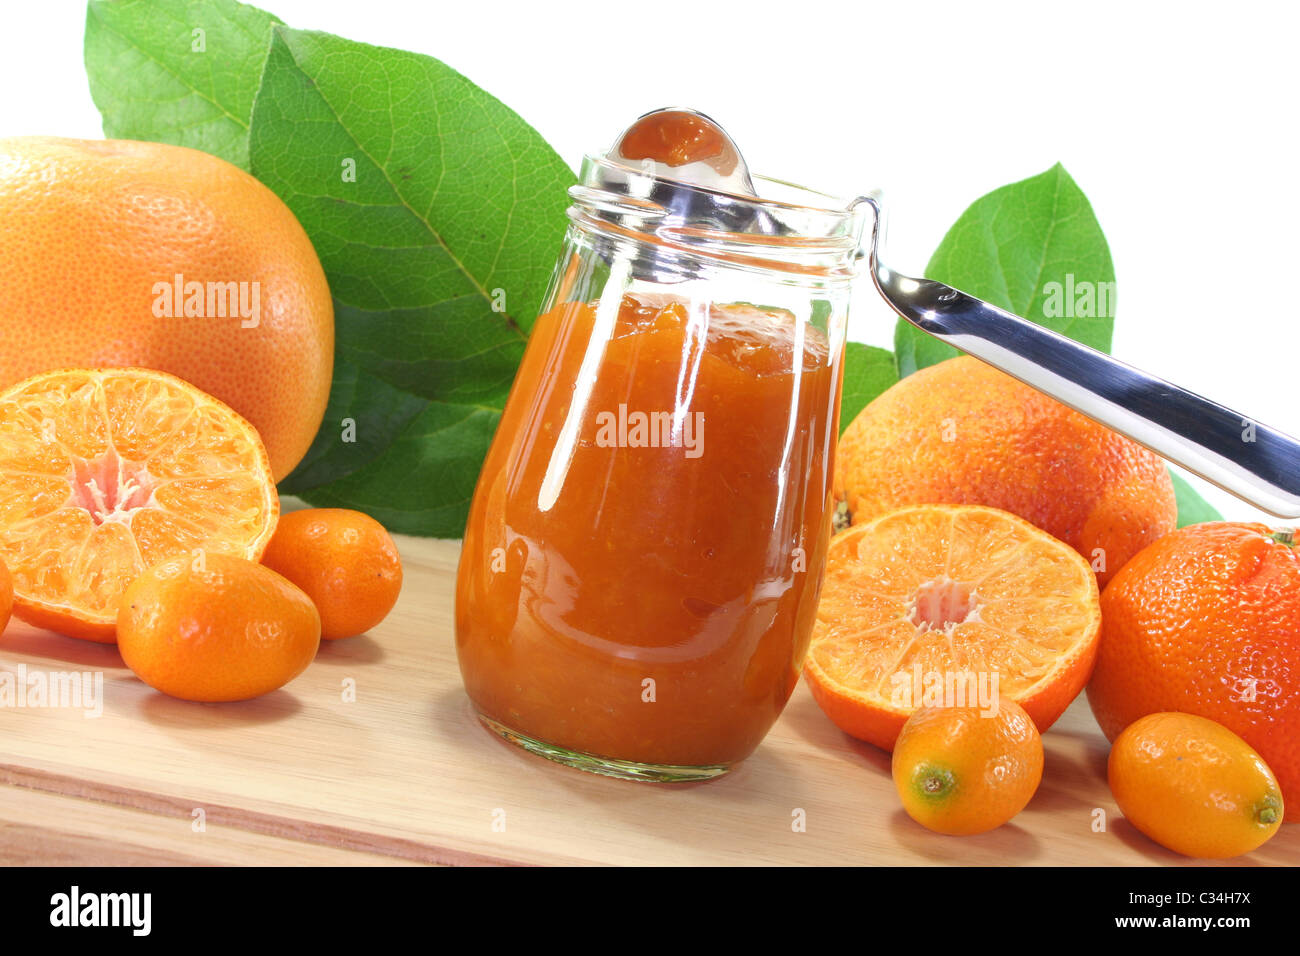 Orange marmalade with different Citrus fruits on a wooden board - Stock Image